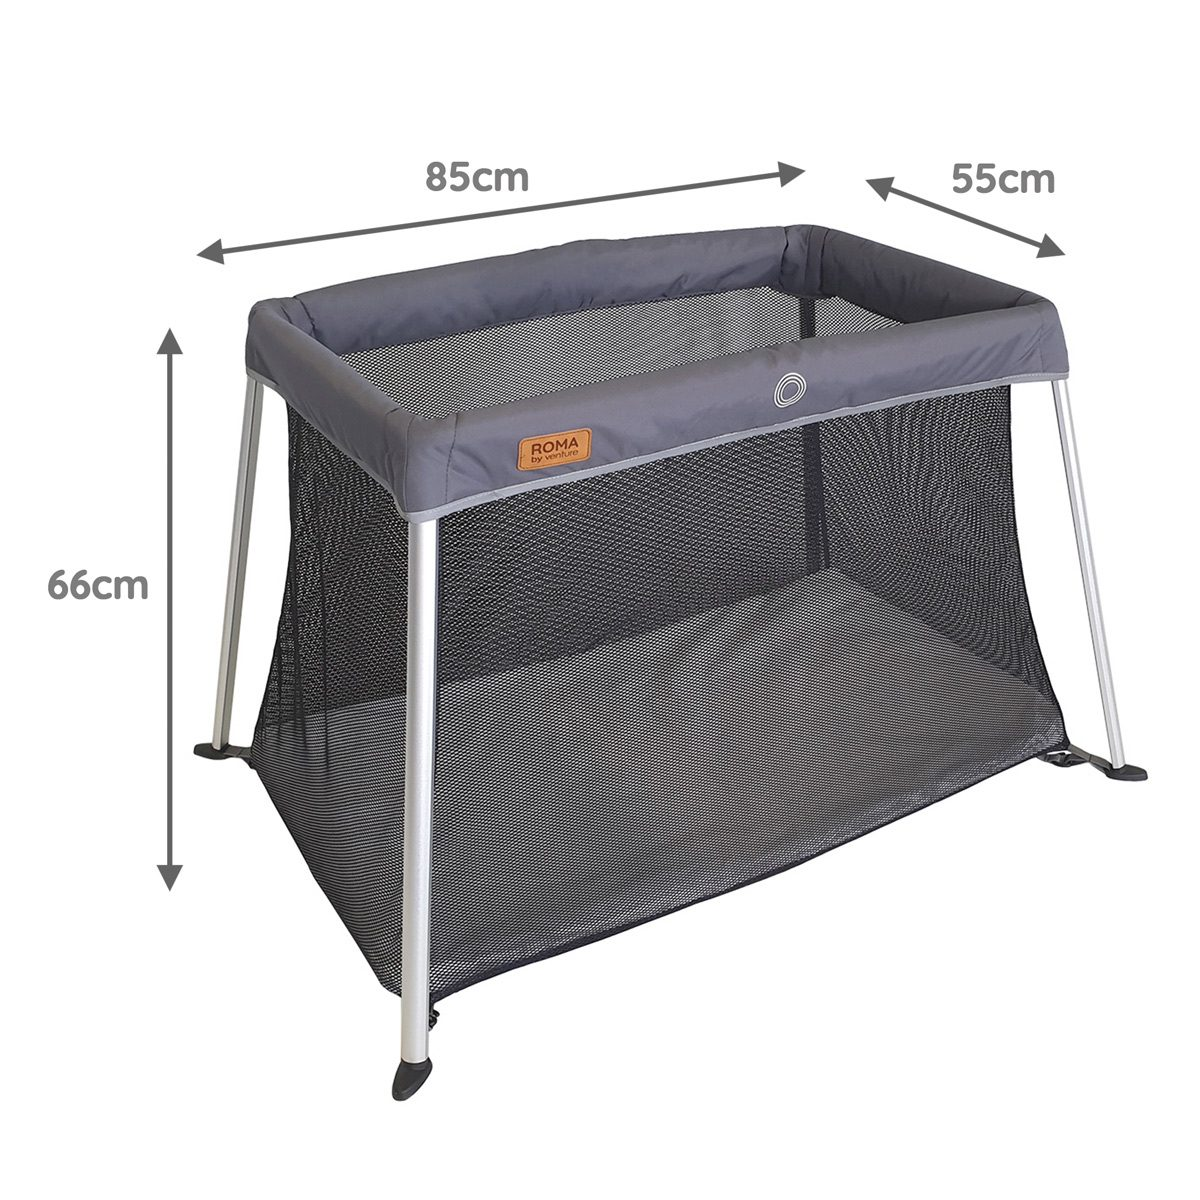 Slate Roma travel cot dimensions